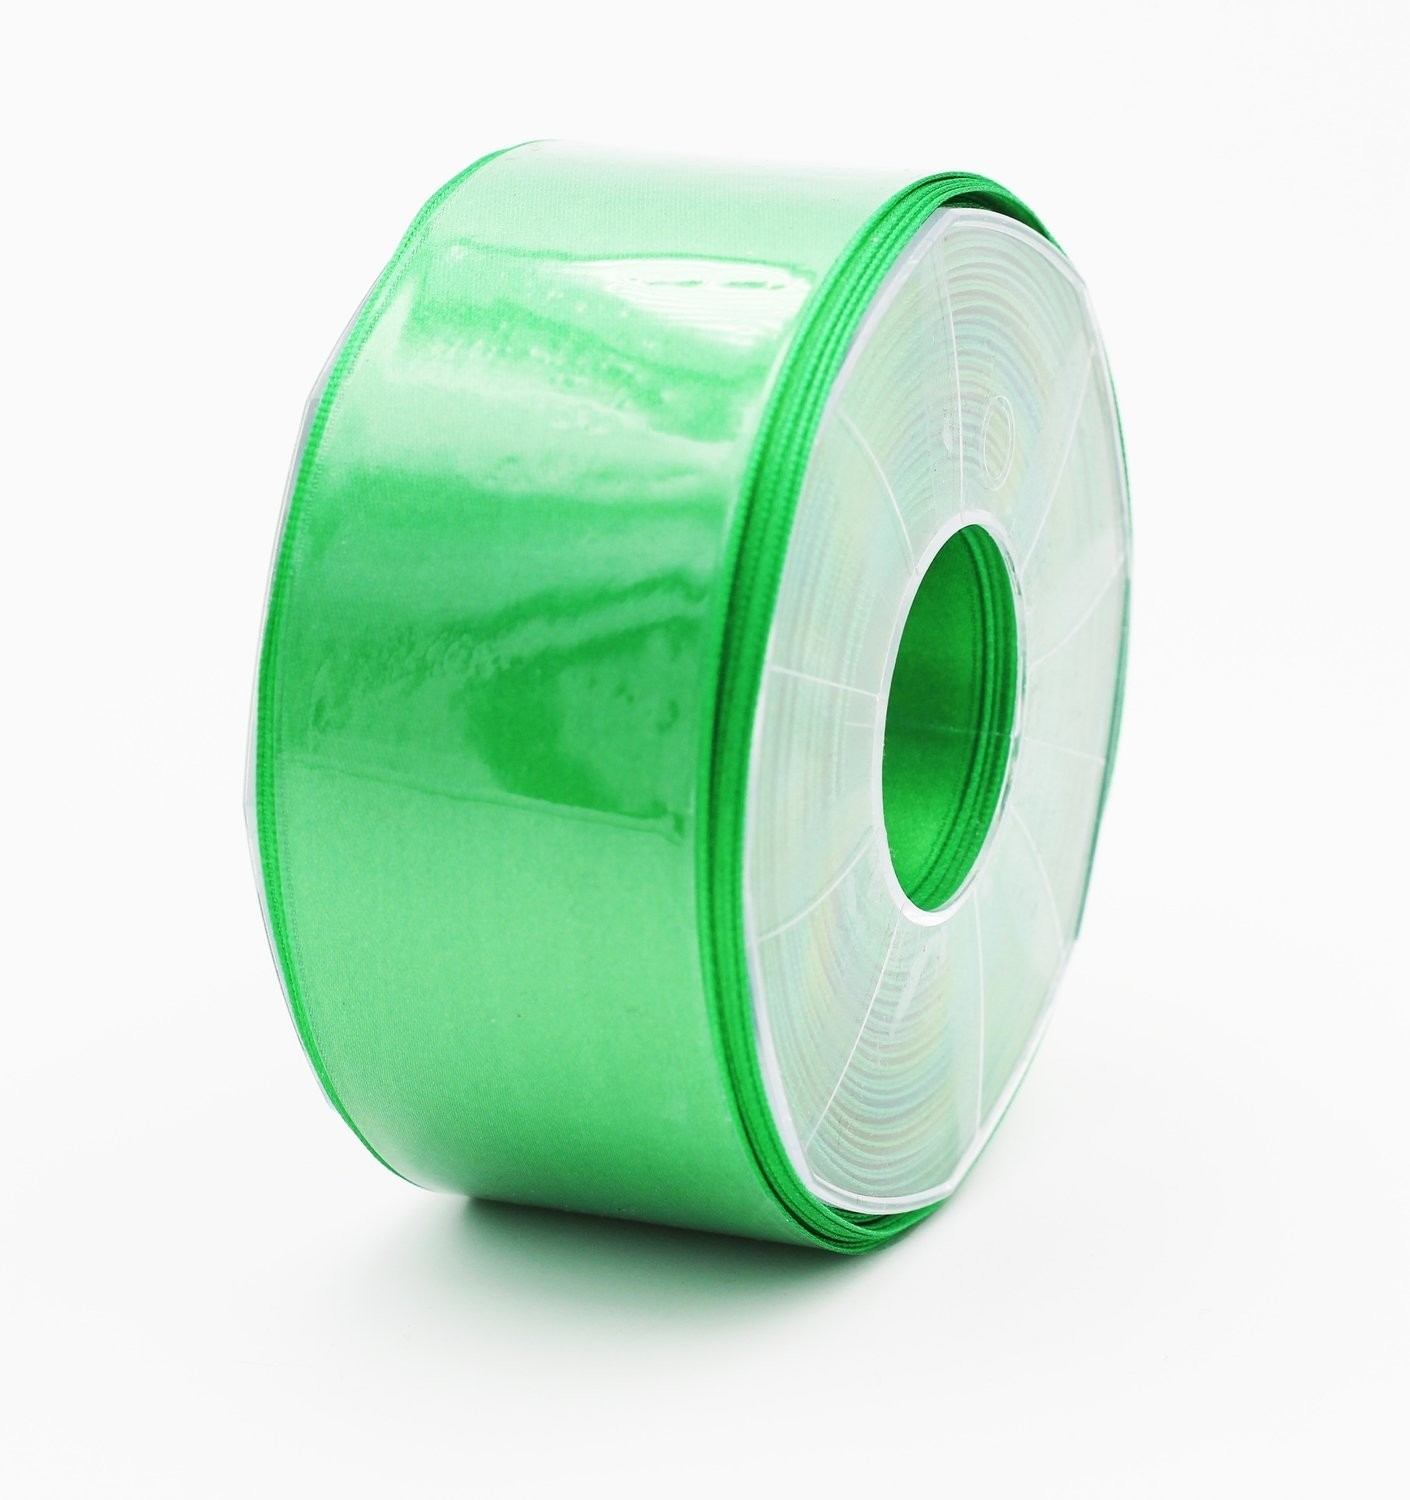 Furlanis nastro di raso verde scuro colore 32 mm. 48 Mt. 25